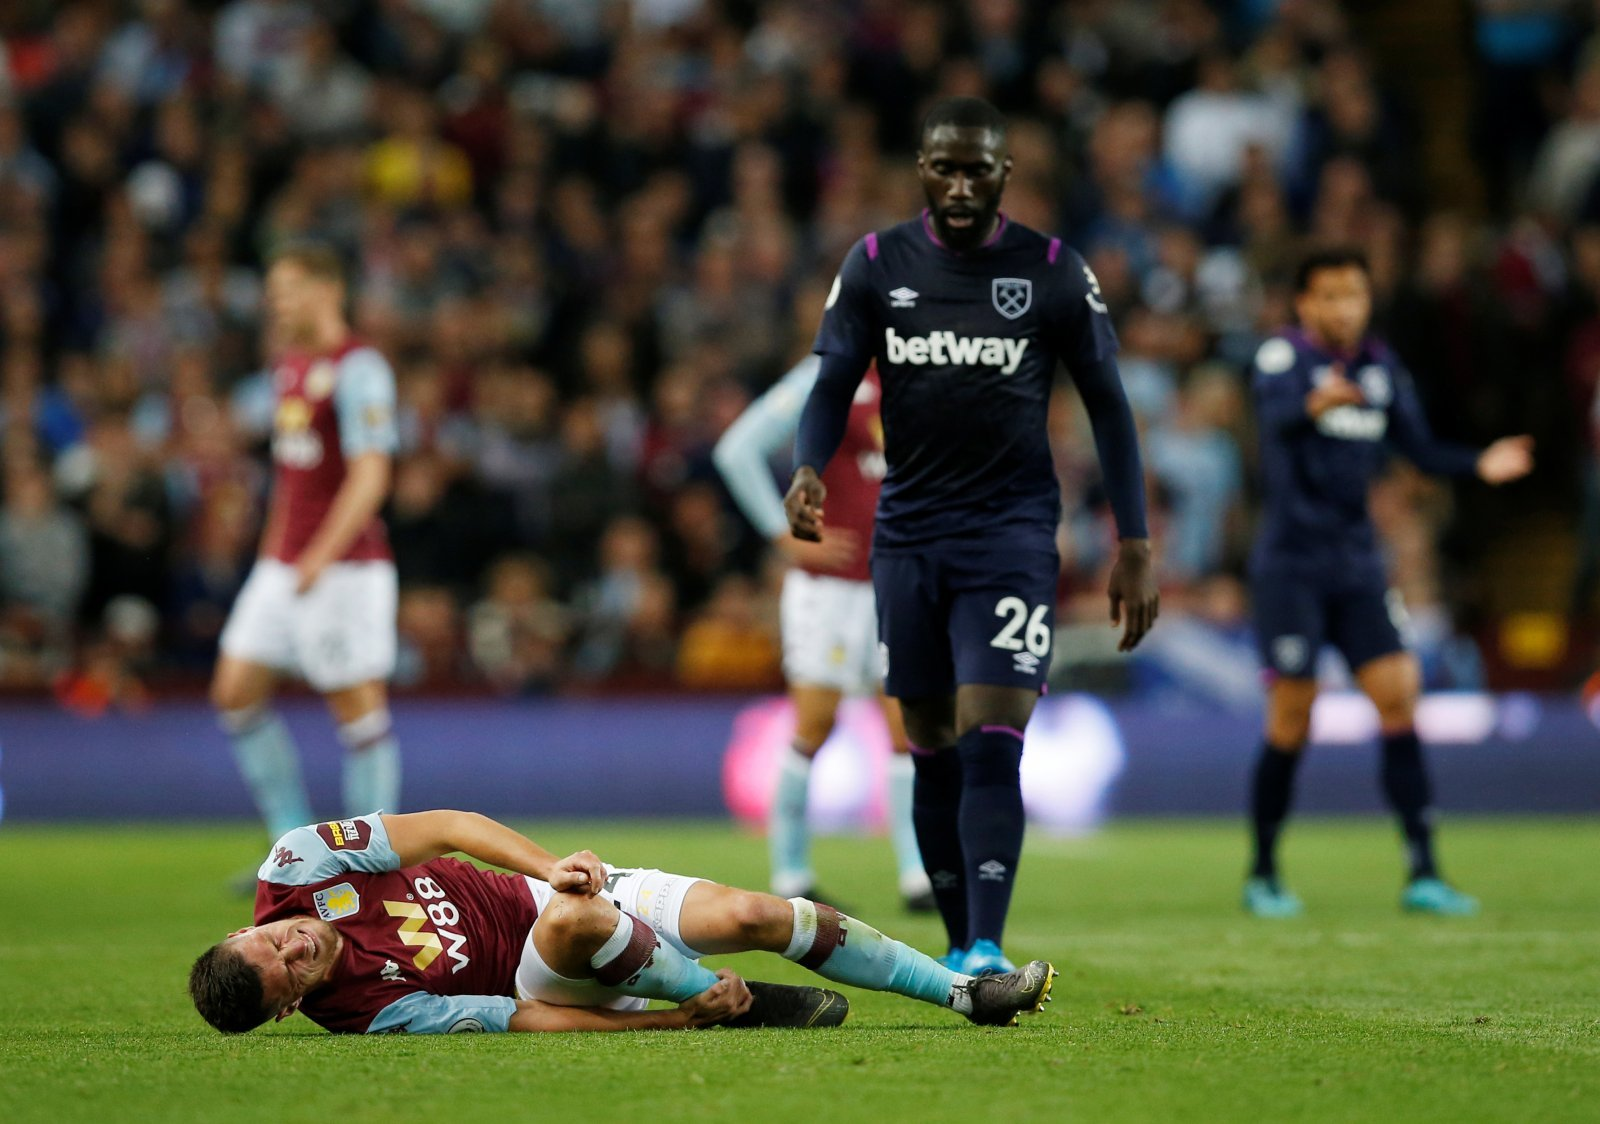 West Ham: Some fans use Arthur Masuaku's birthday as a chance to force manager into playing him